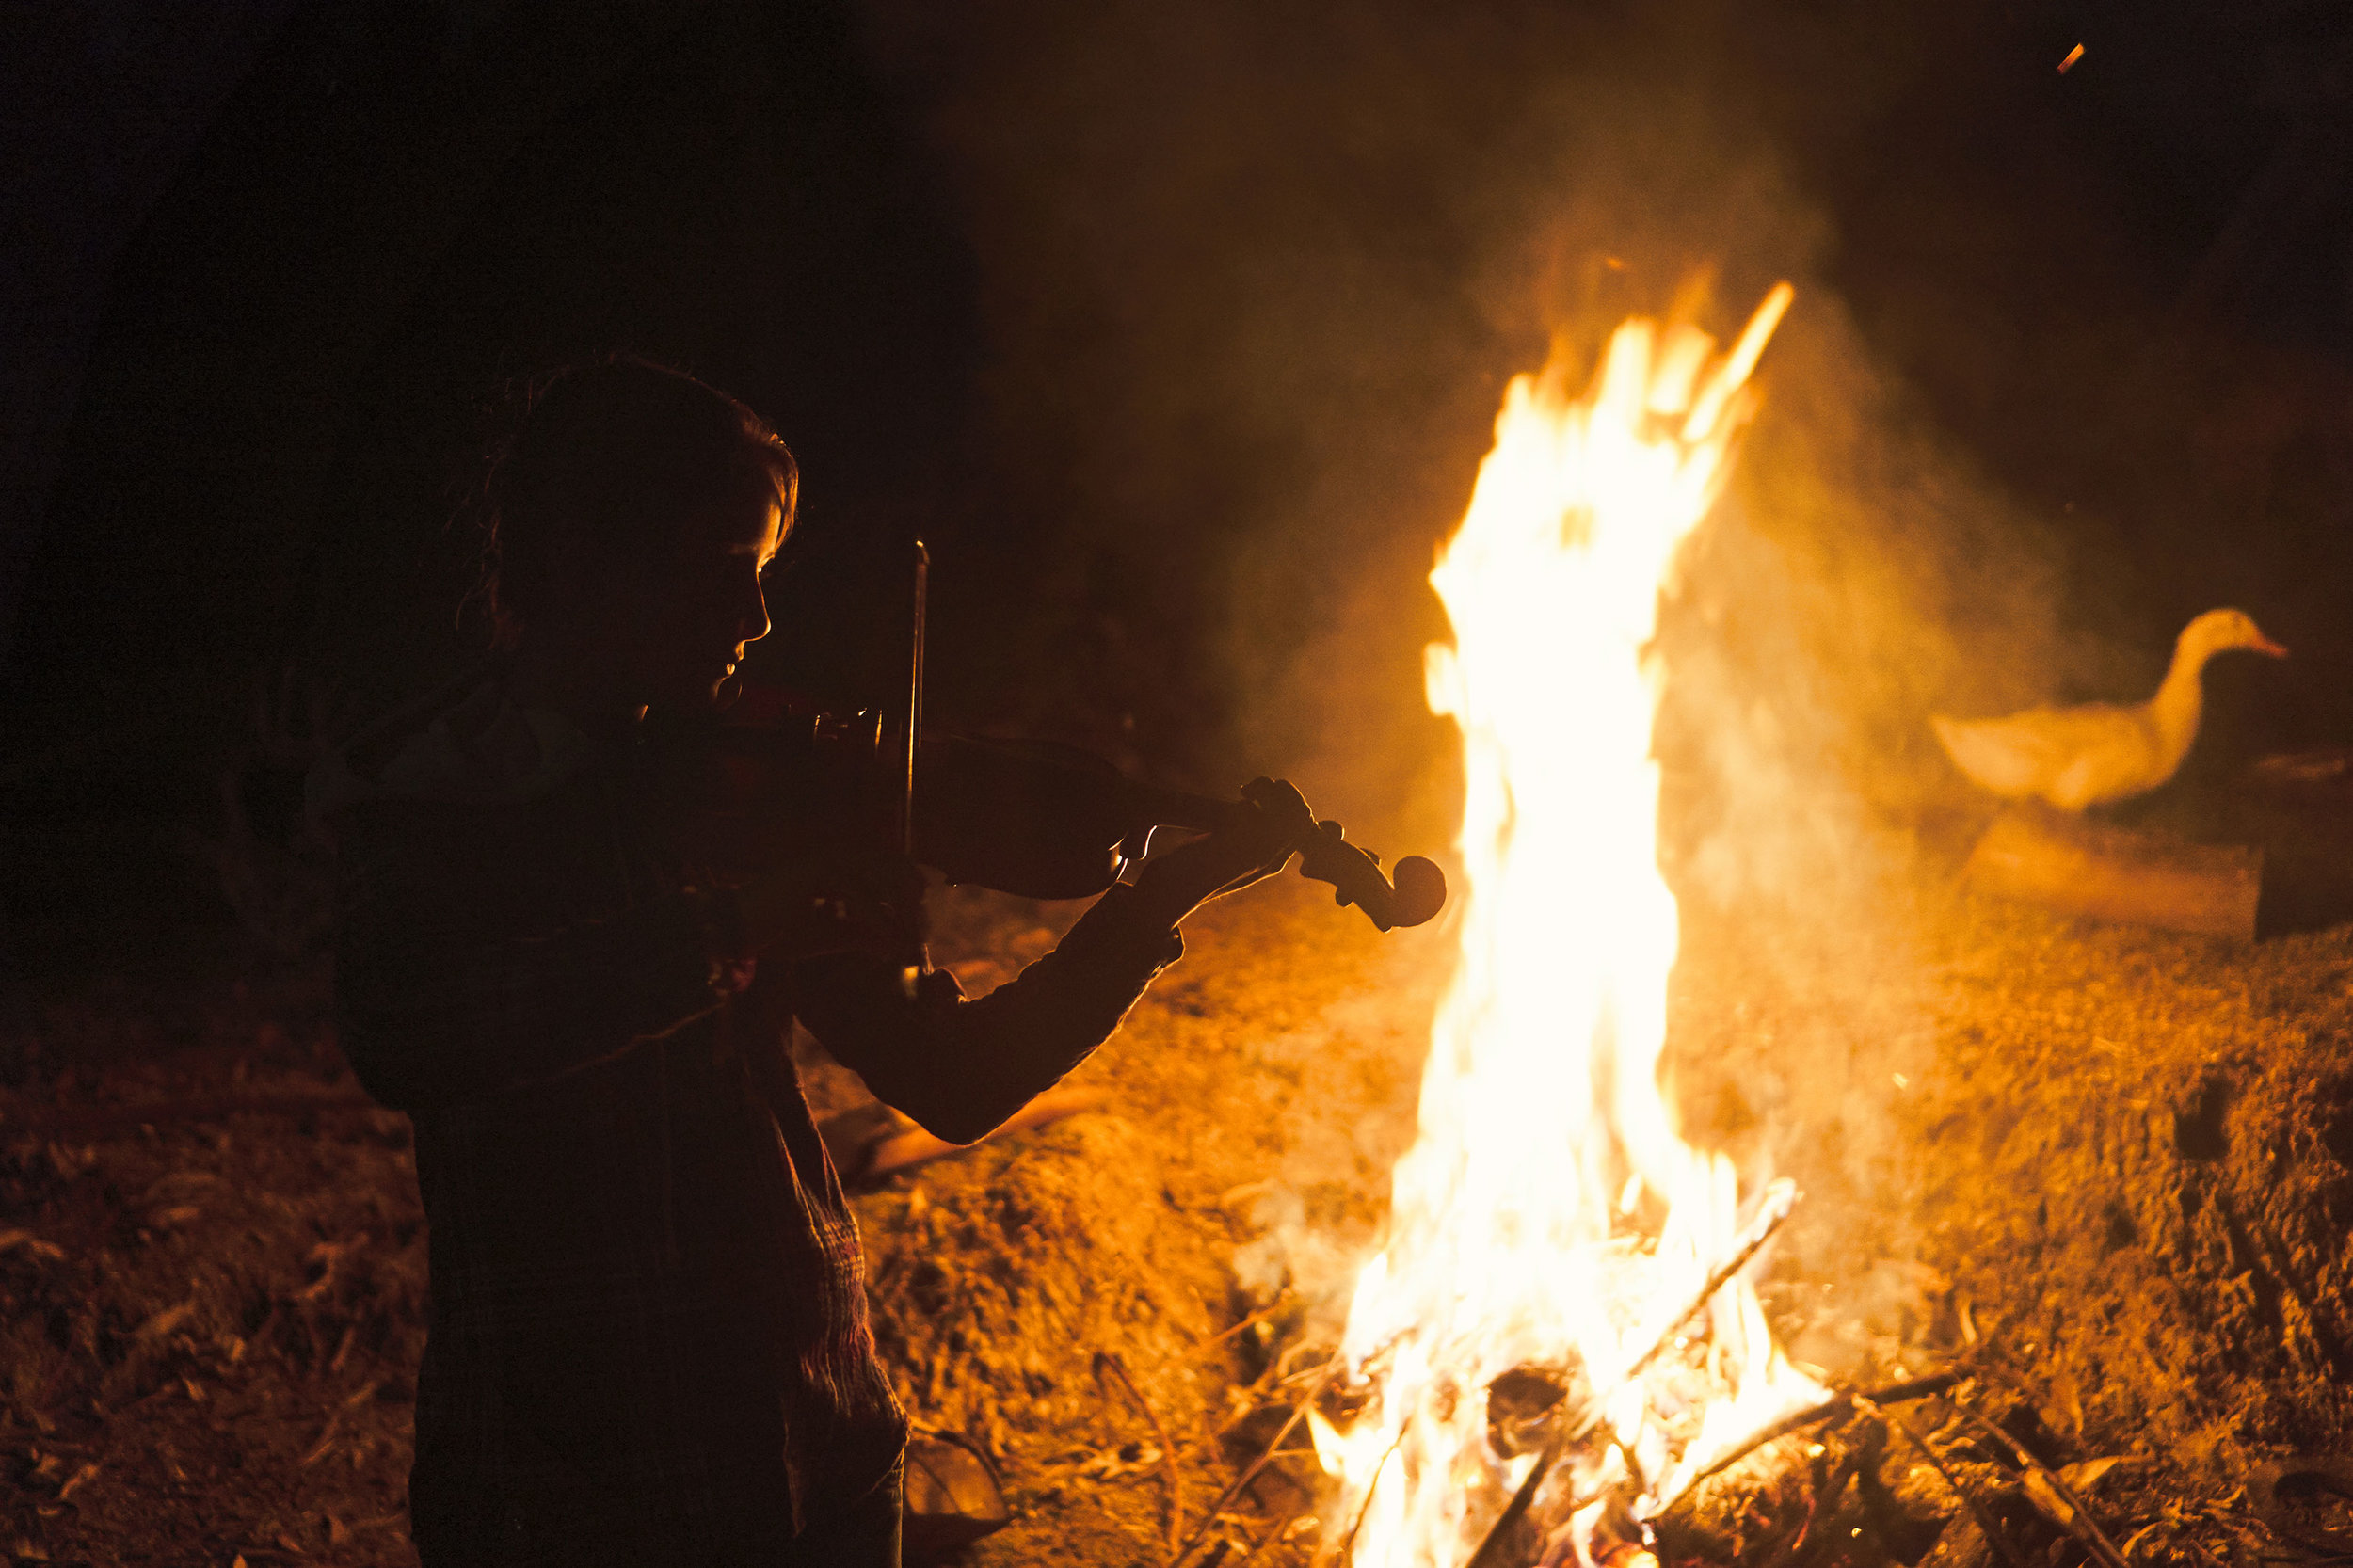 Isabela. playing the violin in front of bonfire